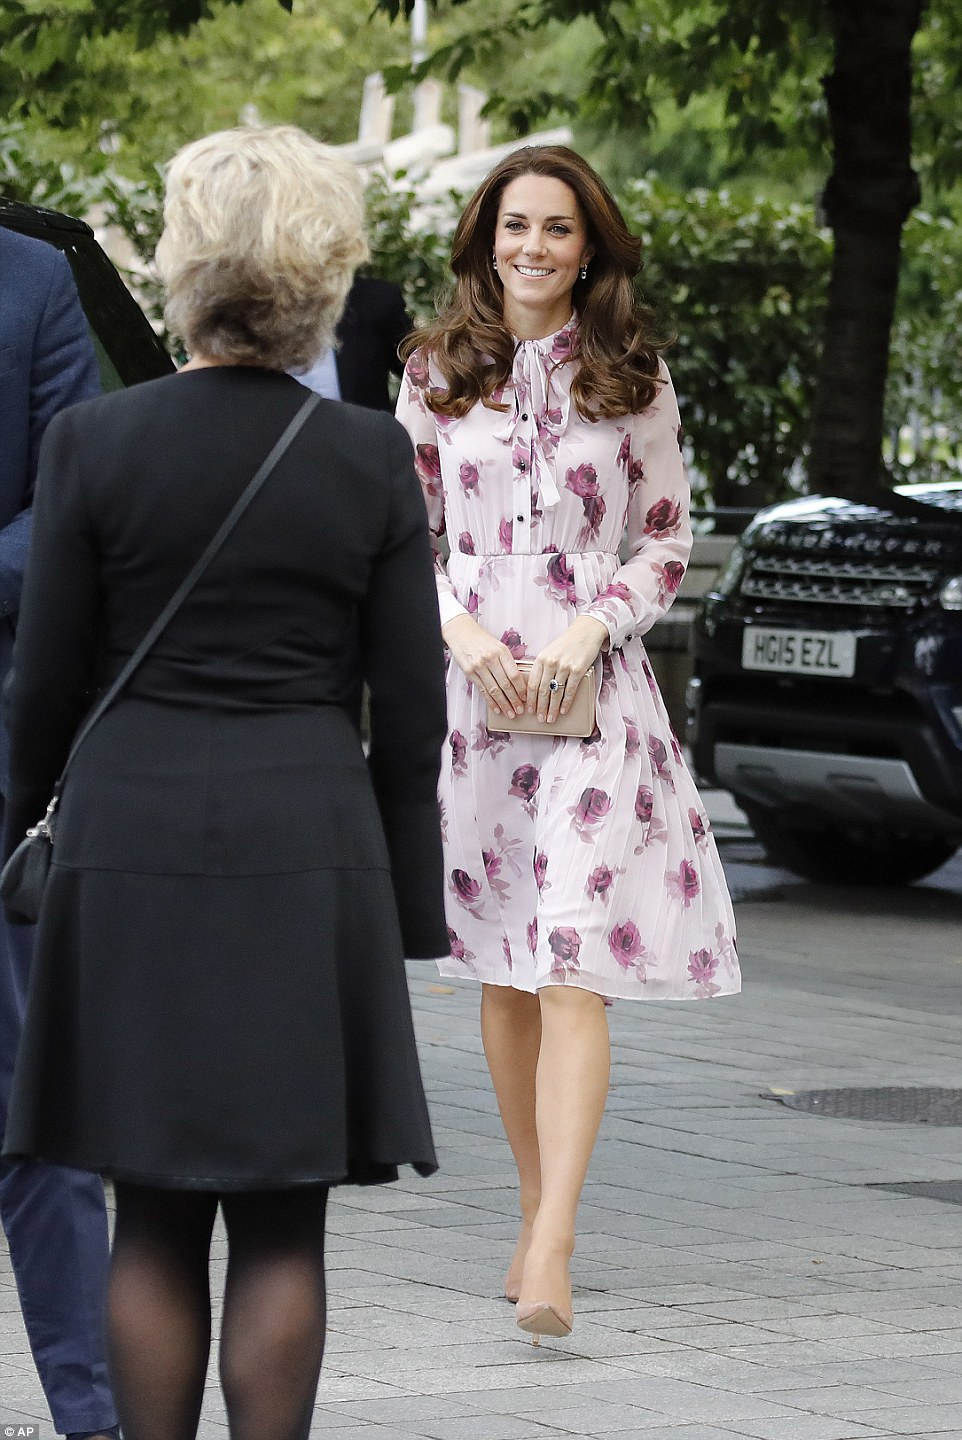 The Duchess's dress by Kate Spade New York features a pussy bow feature and light pleating